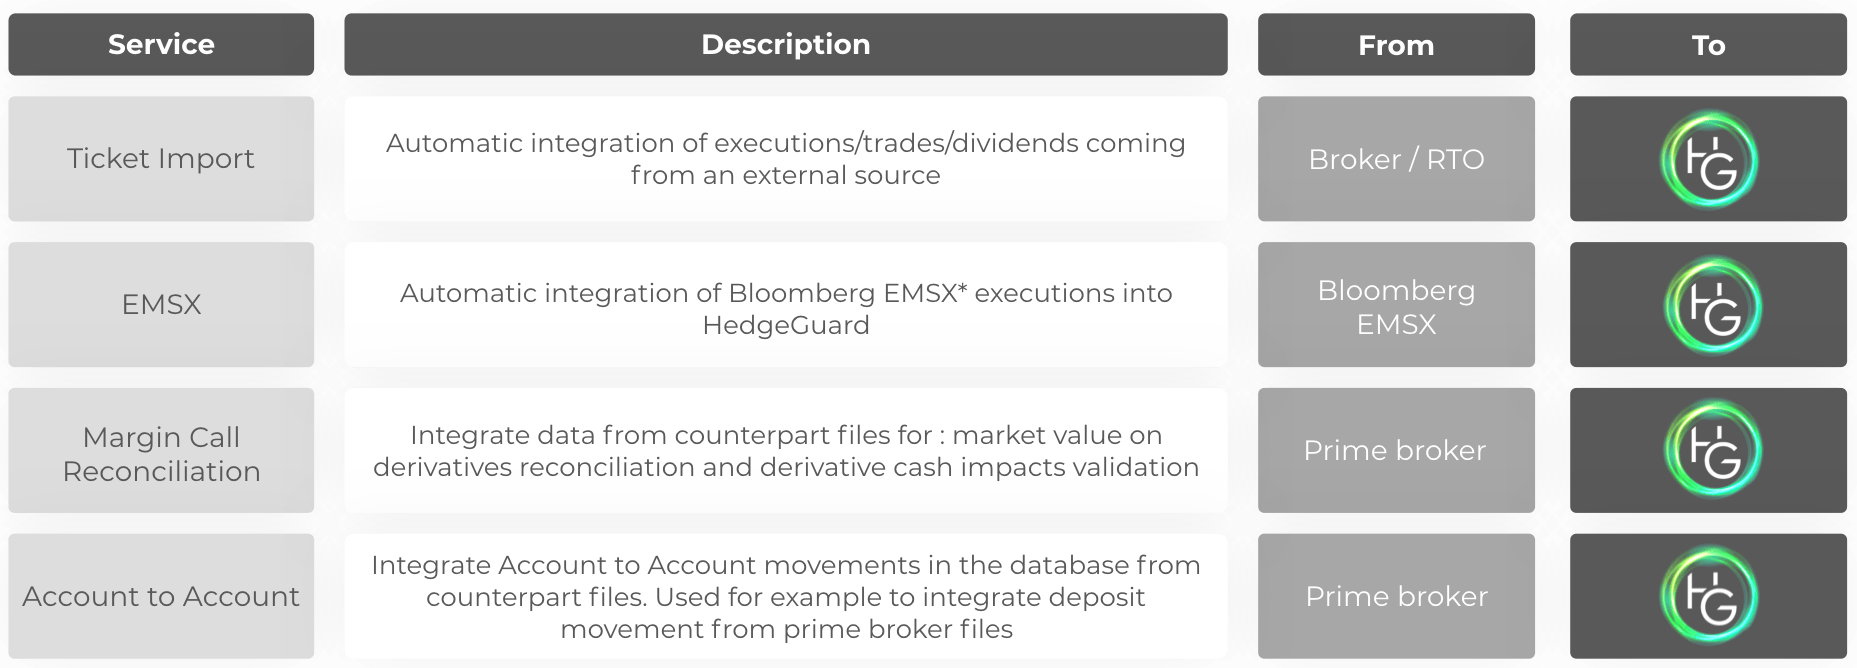 Automated services for exchanges, prime brokers, brokers or execution desks| Hedgeguard